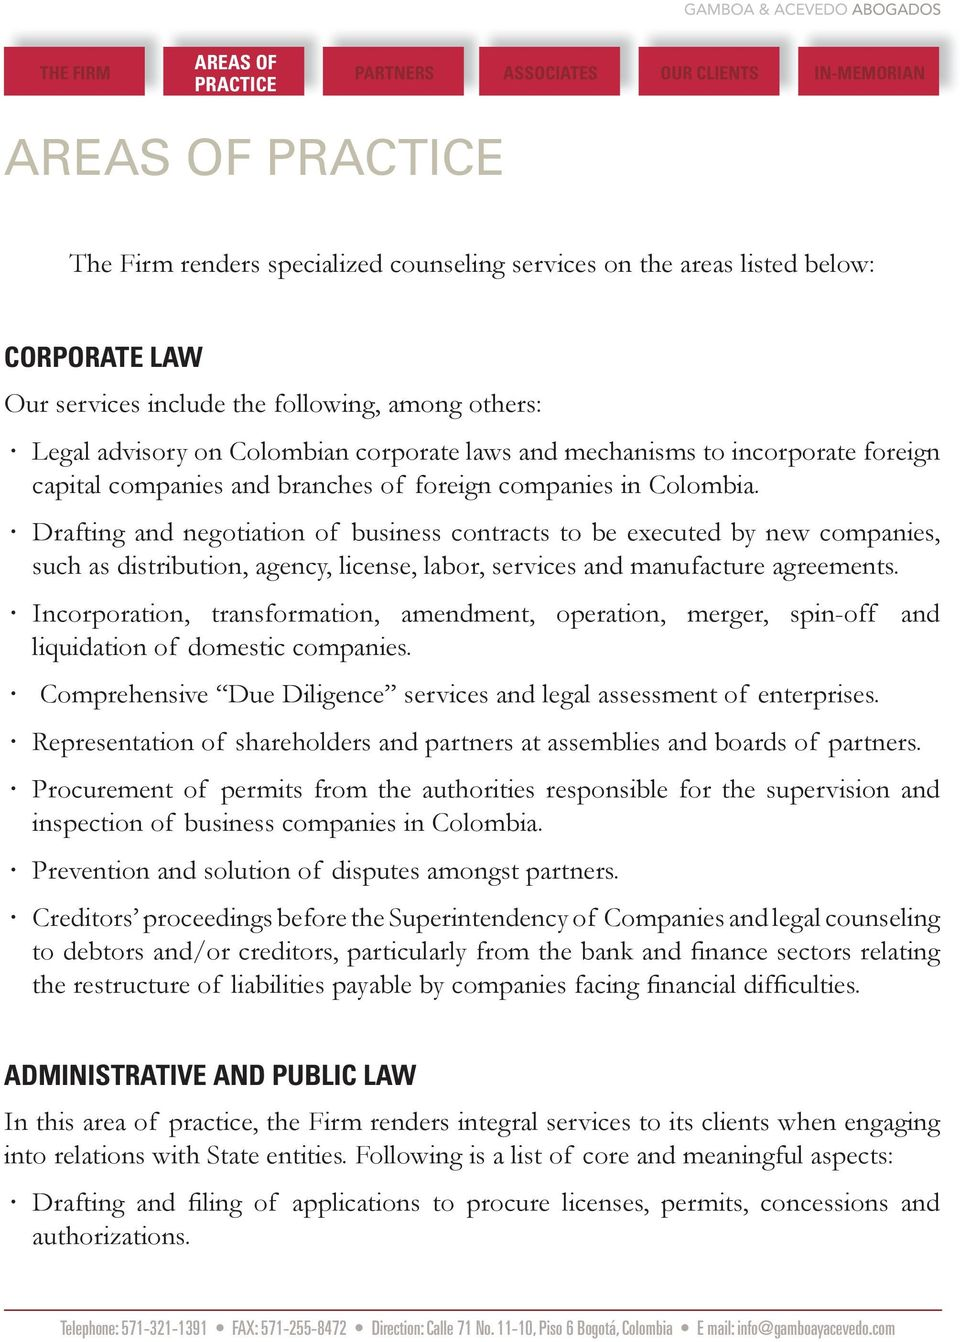 Drafting and negotiation of business contracts to be executed by new companies, such as distribution, agency, license, labor, services and manufacture agreements.